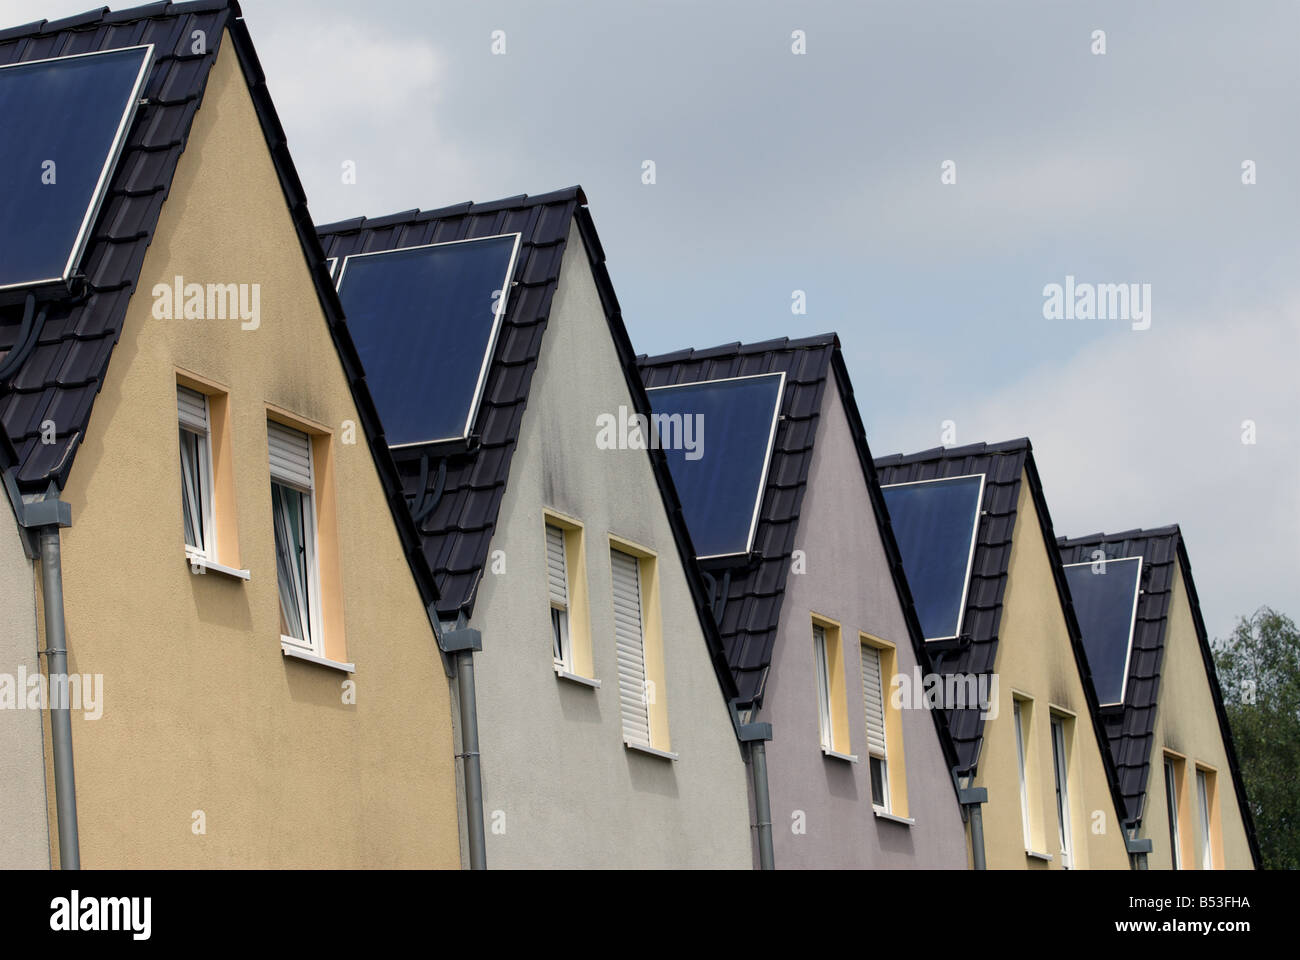 Photovoltaic panels on a solar housing estate, Gelsenkirchen-Bismark, North Rhine-Westphalia, Germany. - Stock Image